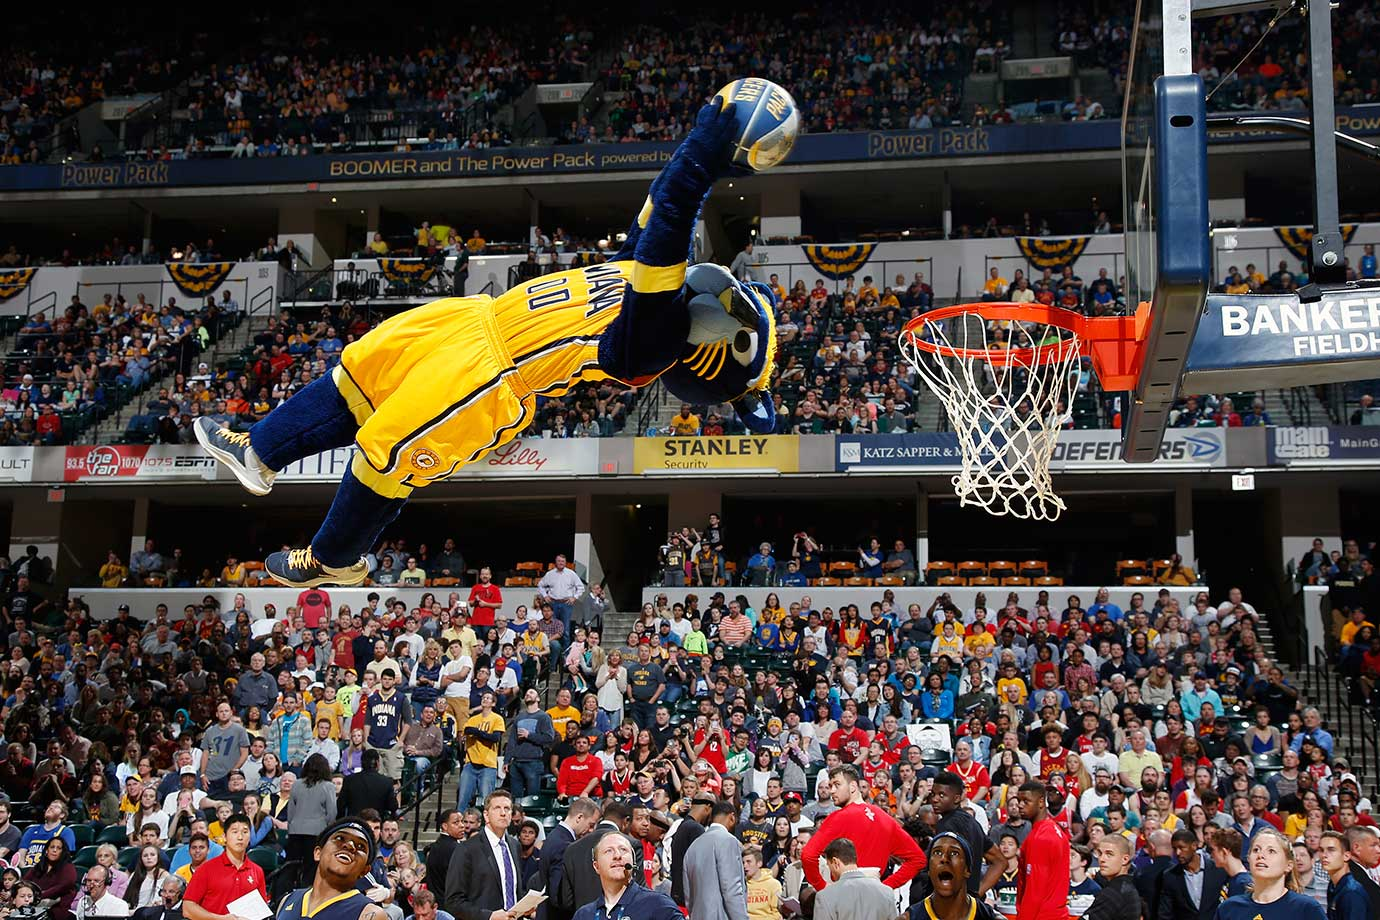 Indiana Pacers mascot Boomer goes in for a dunk while performing during a timeout in a game against the Houston Rockets in Indianapolis.